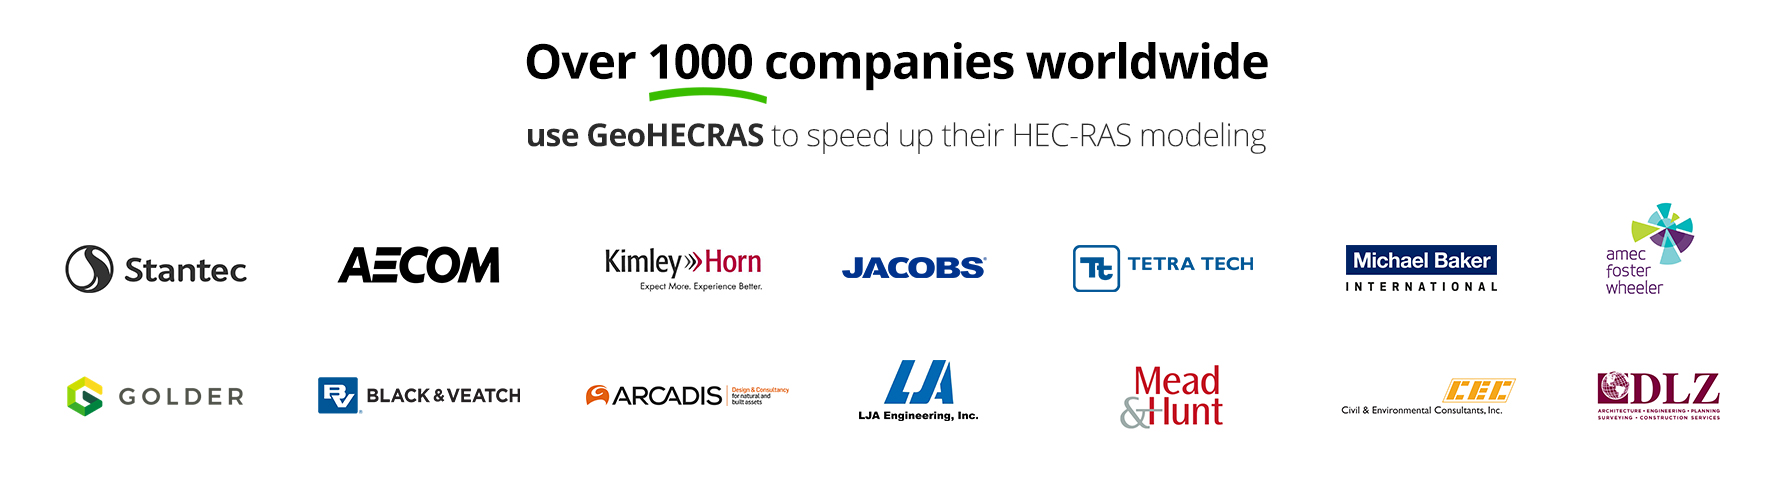 Use GeoHECRAS to speed up their HEC-RAS modeling